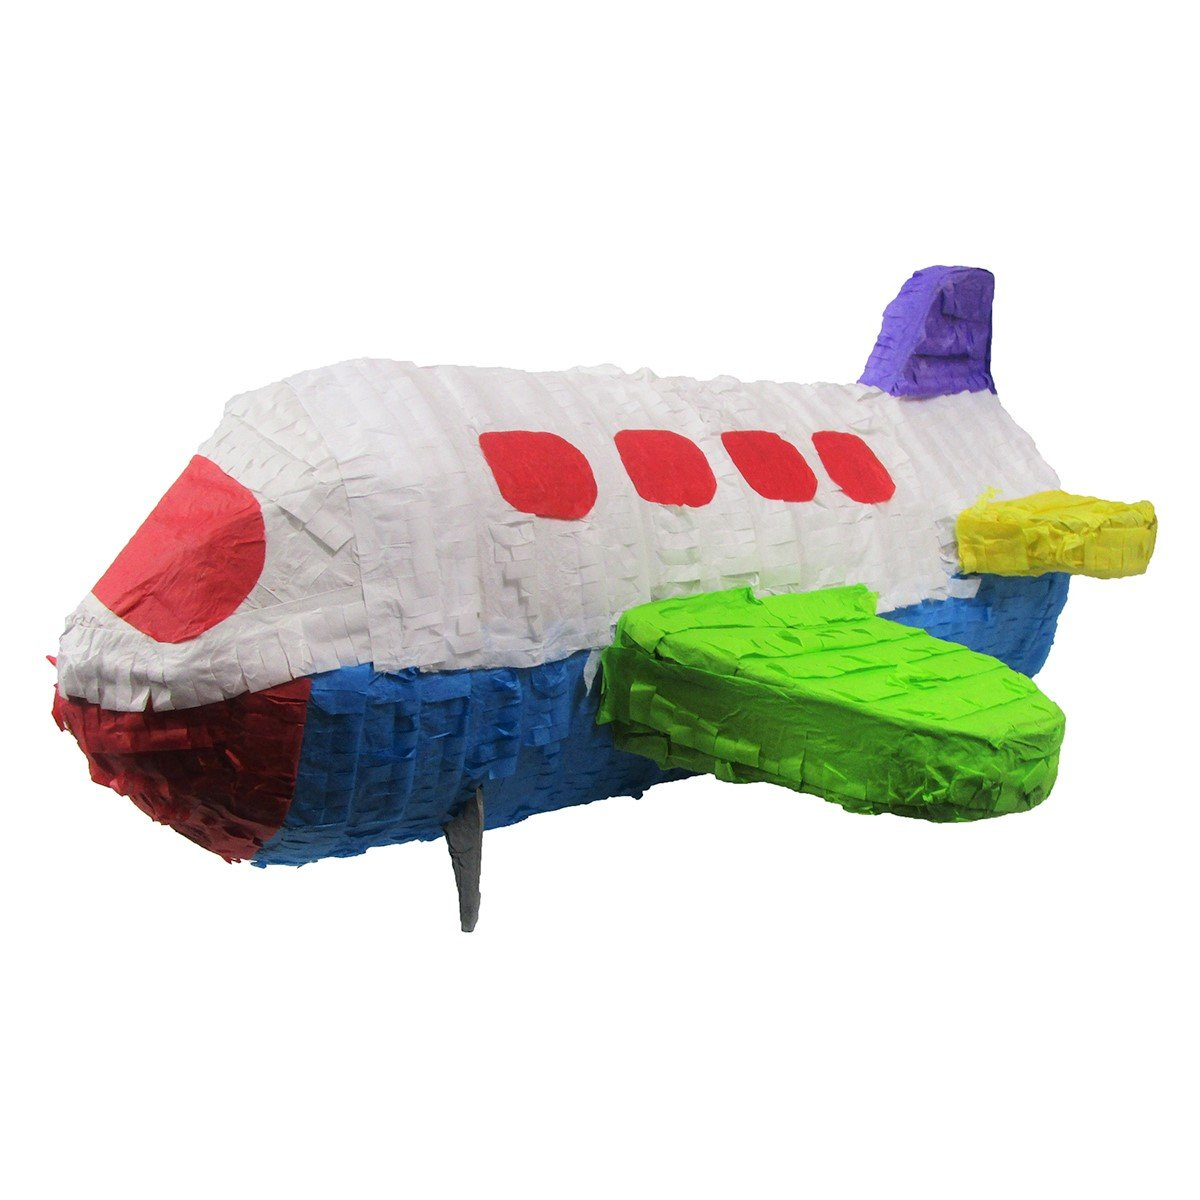 Large Airplane Pinata, Birthday Party Game and Centerpiece Decoration